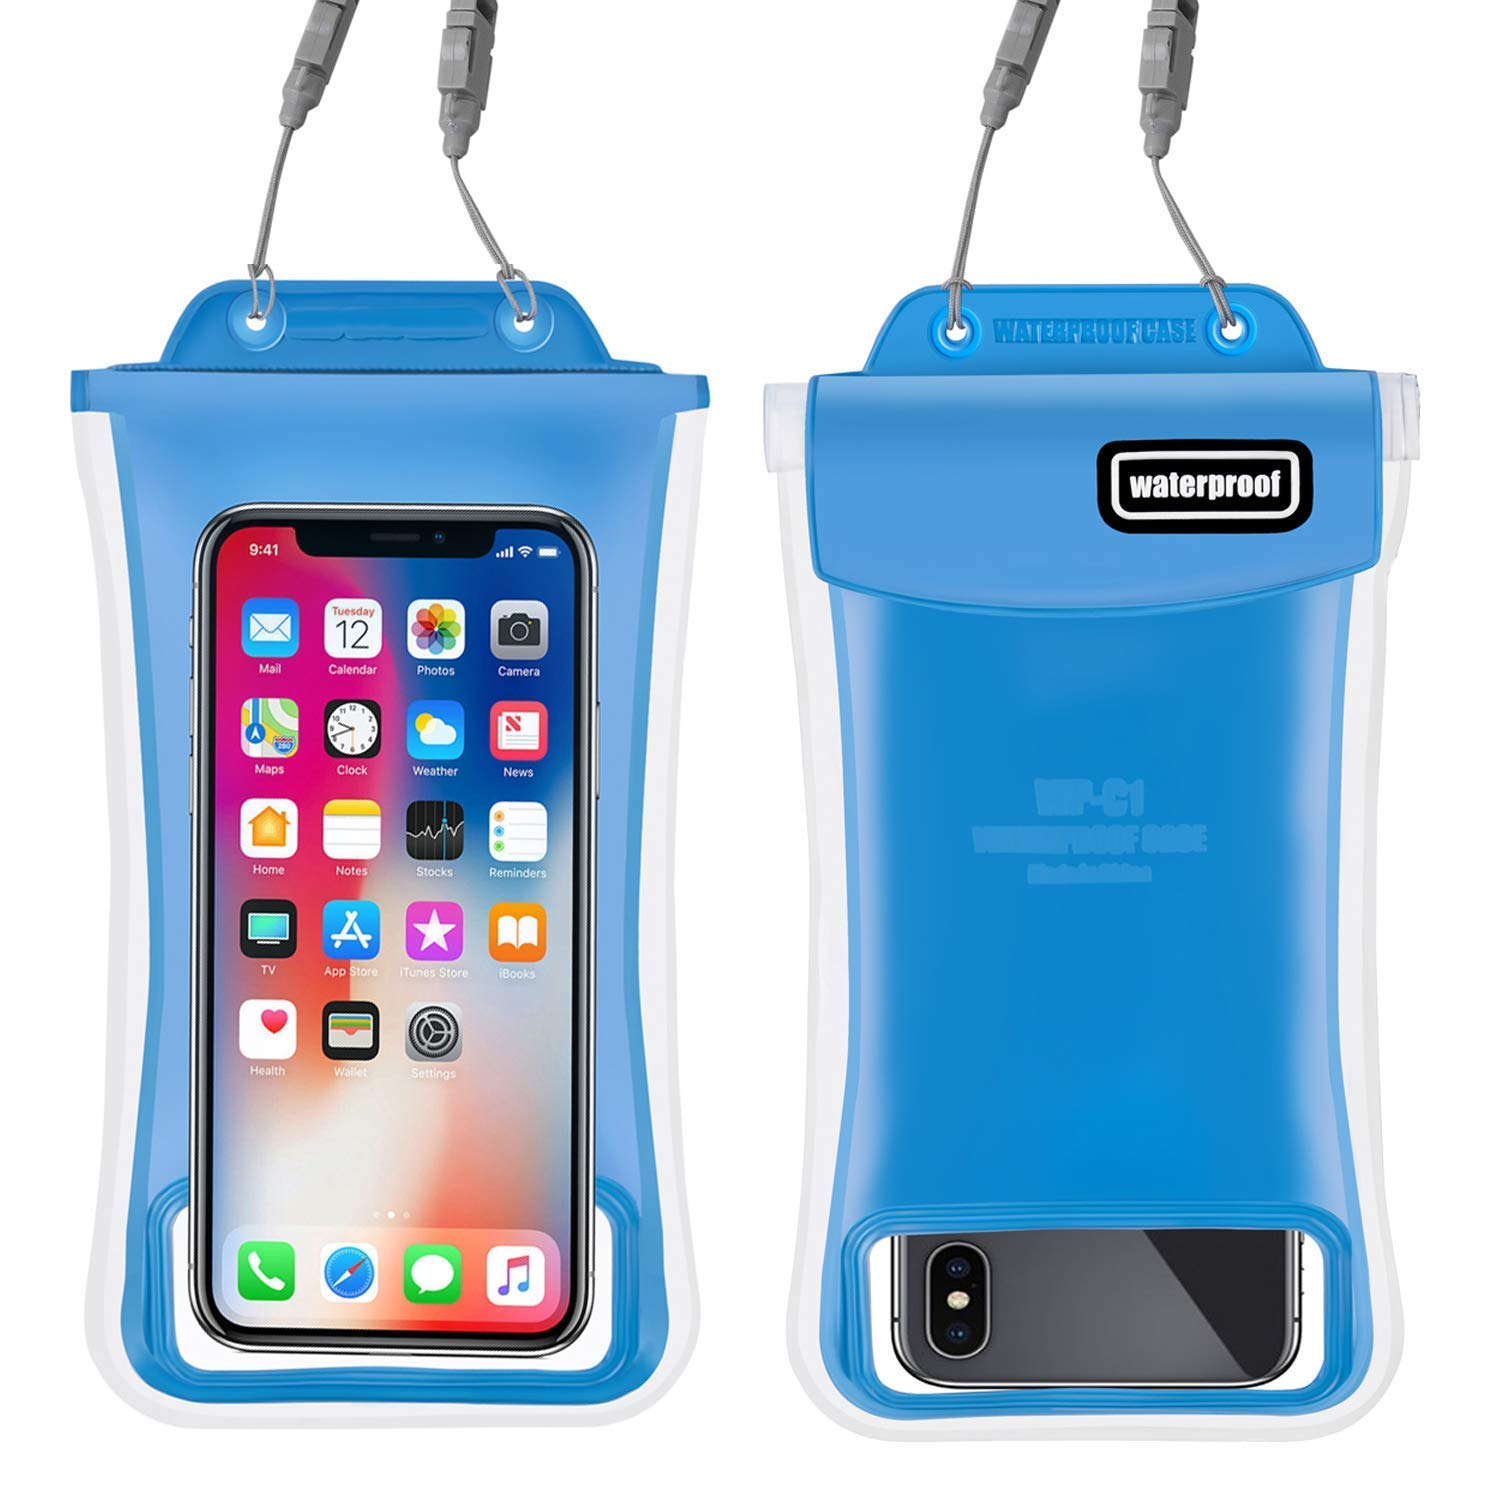 Waterproof Phone Pouch,2Pack Floating Gihery Universal Cellphone Waterproof Pouch Case IPX8 Certified Dry Bag Compatible with iPhone XsMax/Xs/Xr/X/8Plus/8/7Plus/7/6s/6 Samsung Galaxy S10/S10Plus/S9 by Gihery